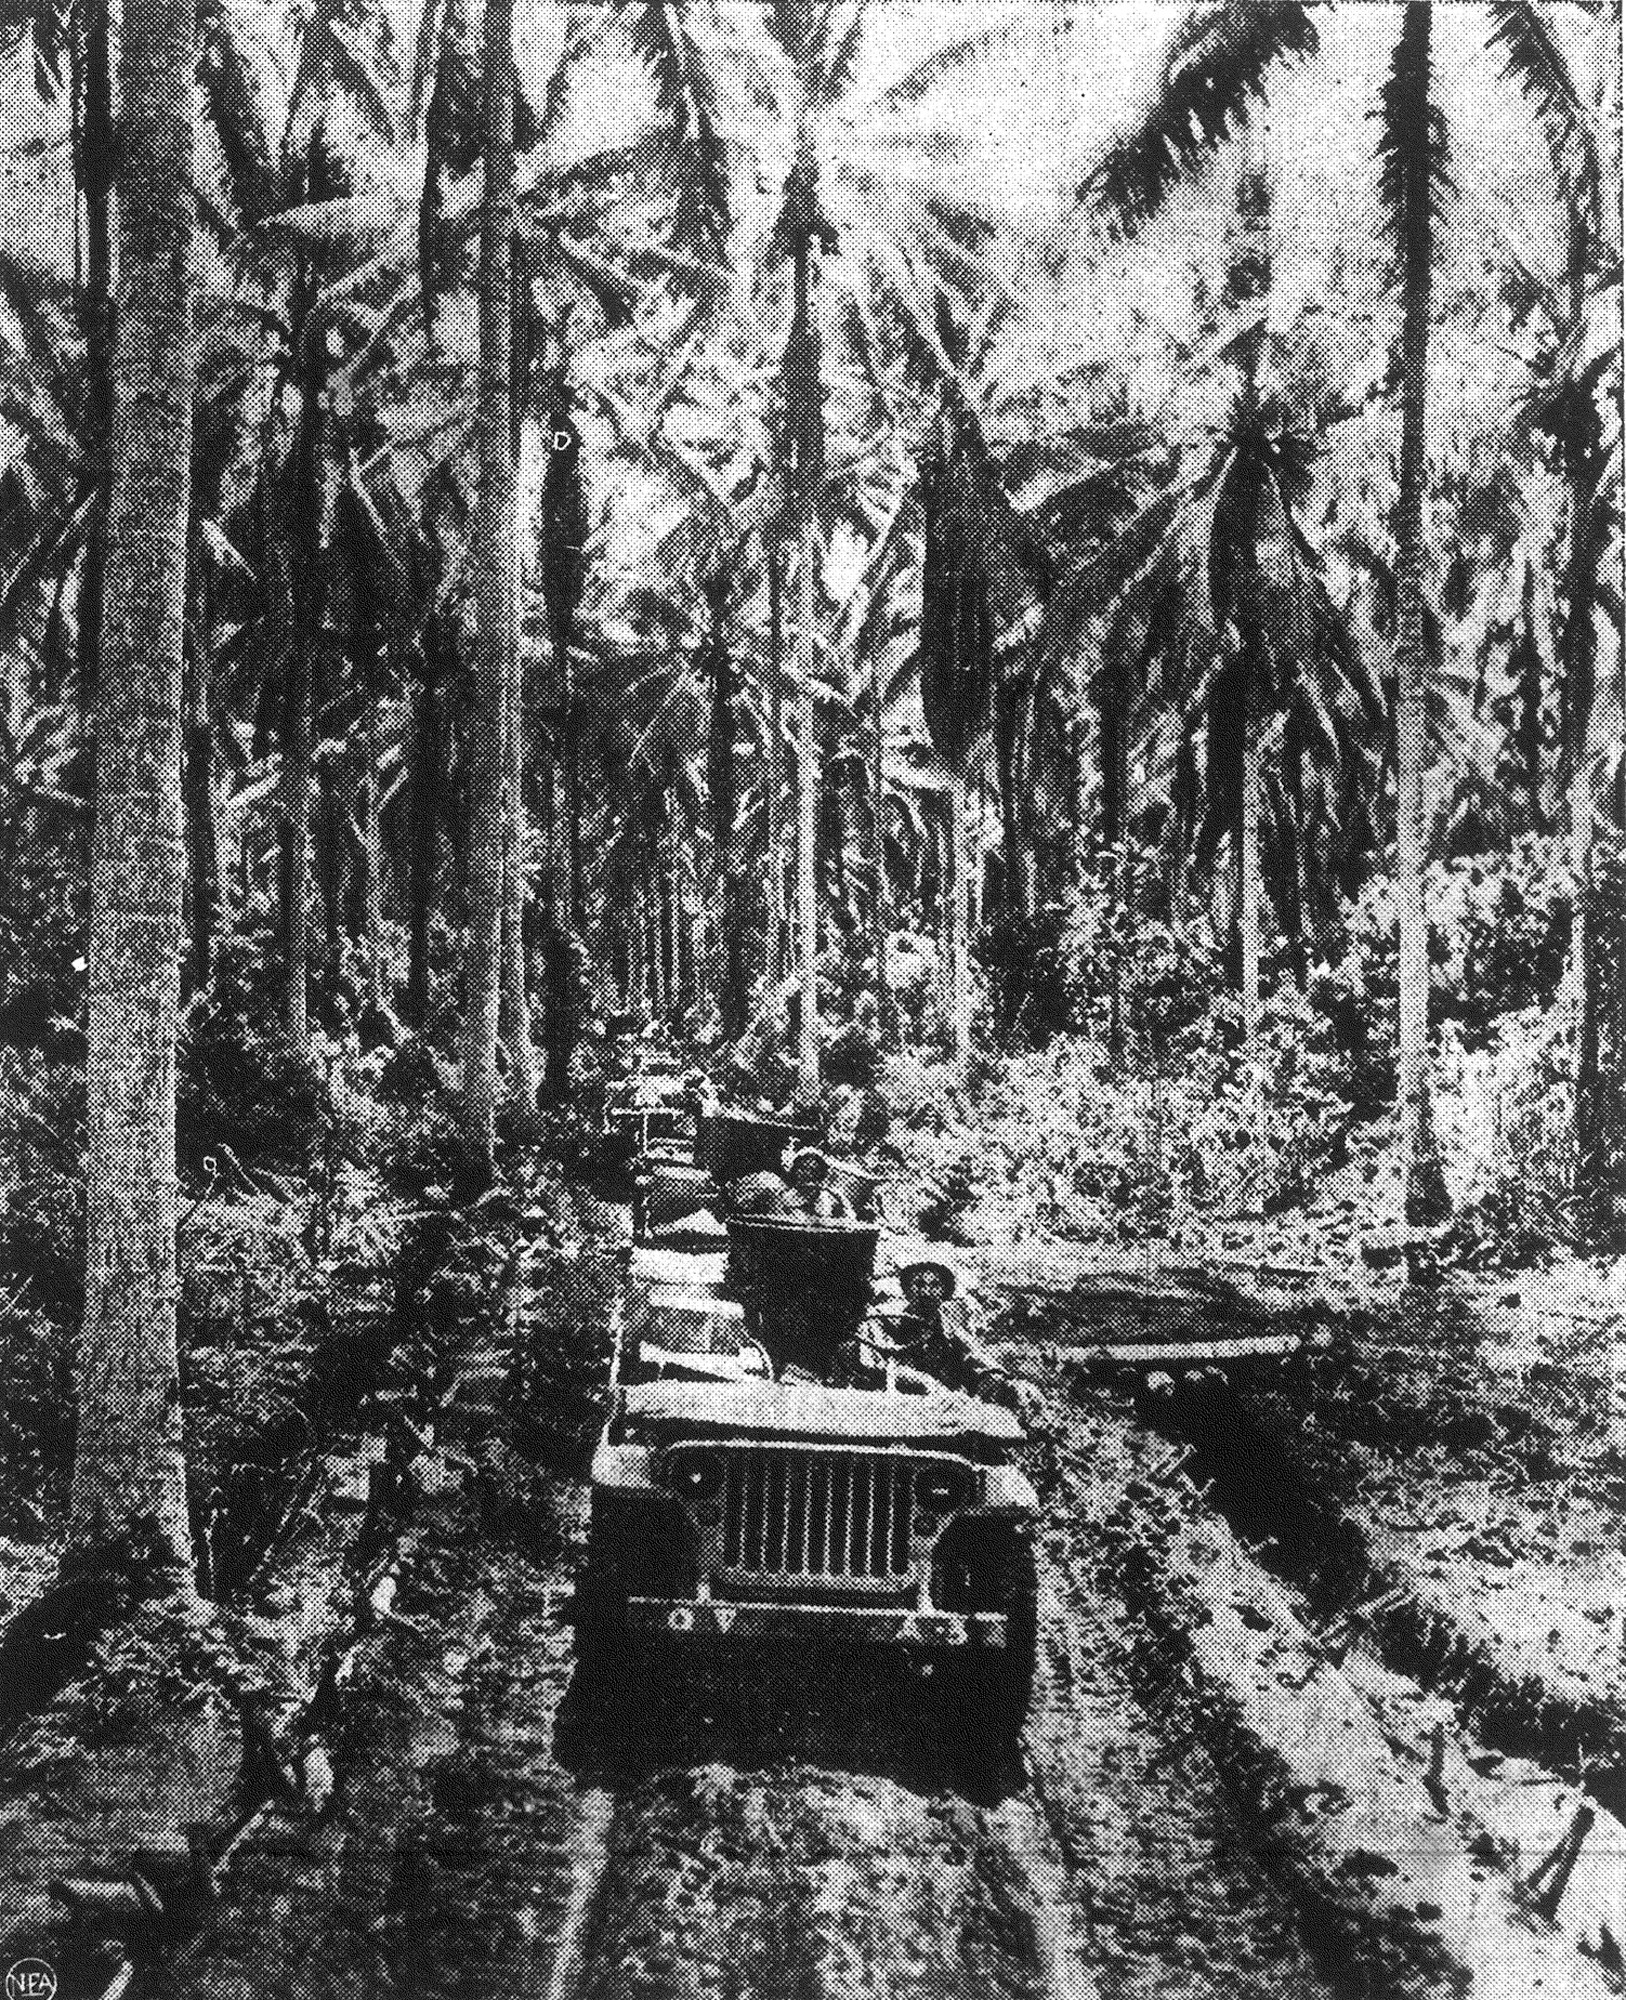 1945 - Up a muddy jungle road hacked through with palms in New Guiena rolls a caravan of Jeeps, bournd for the first food and mail for troops who were hungry for both.